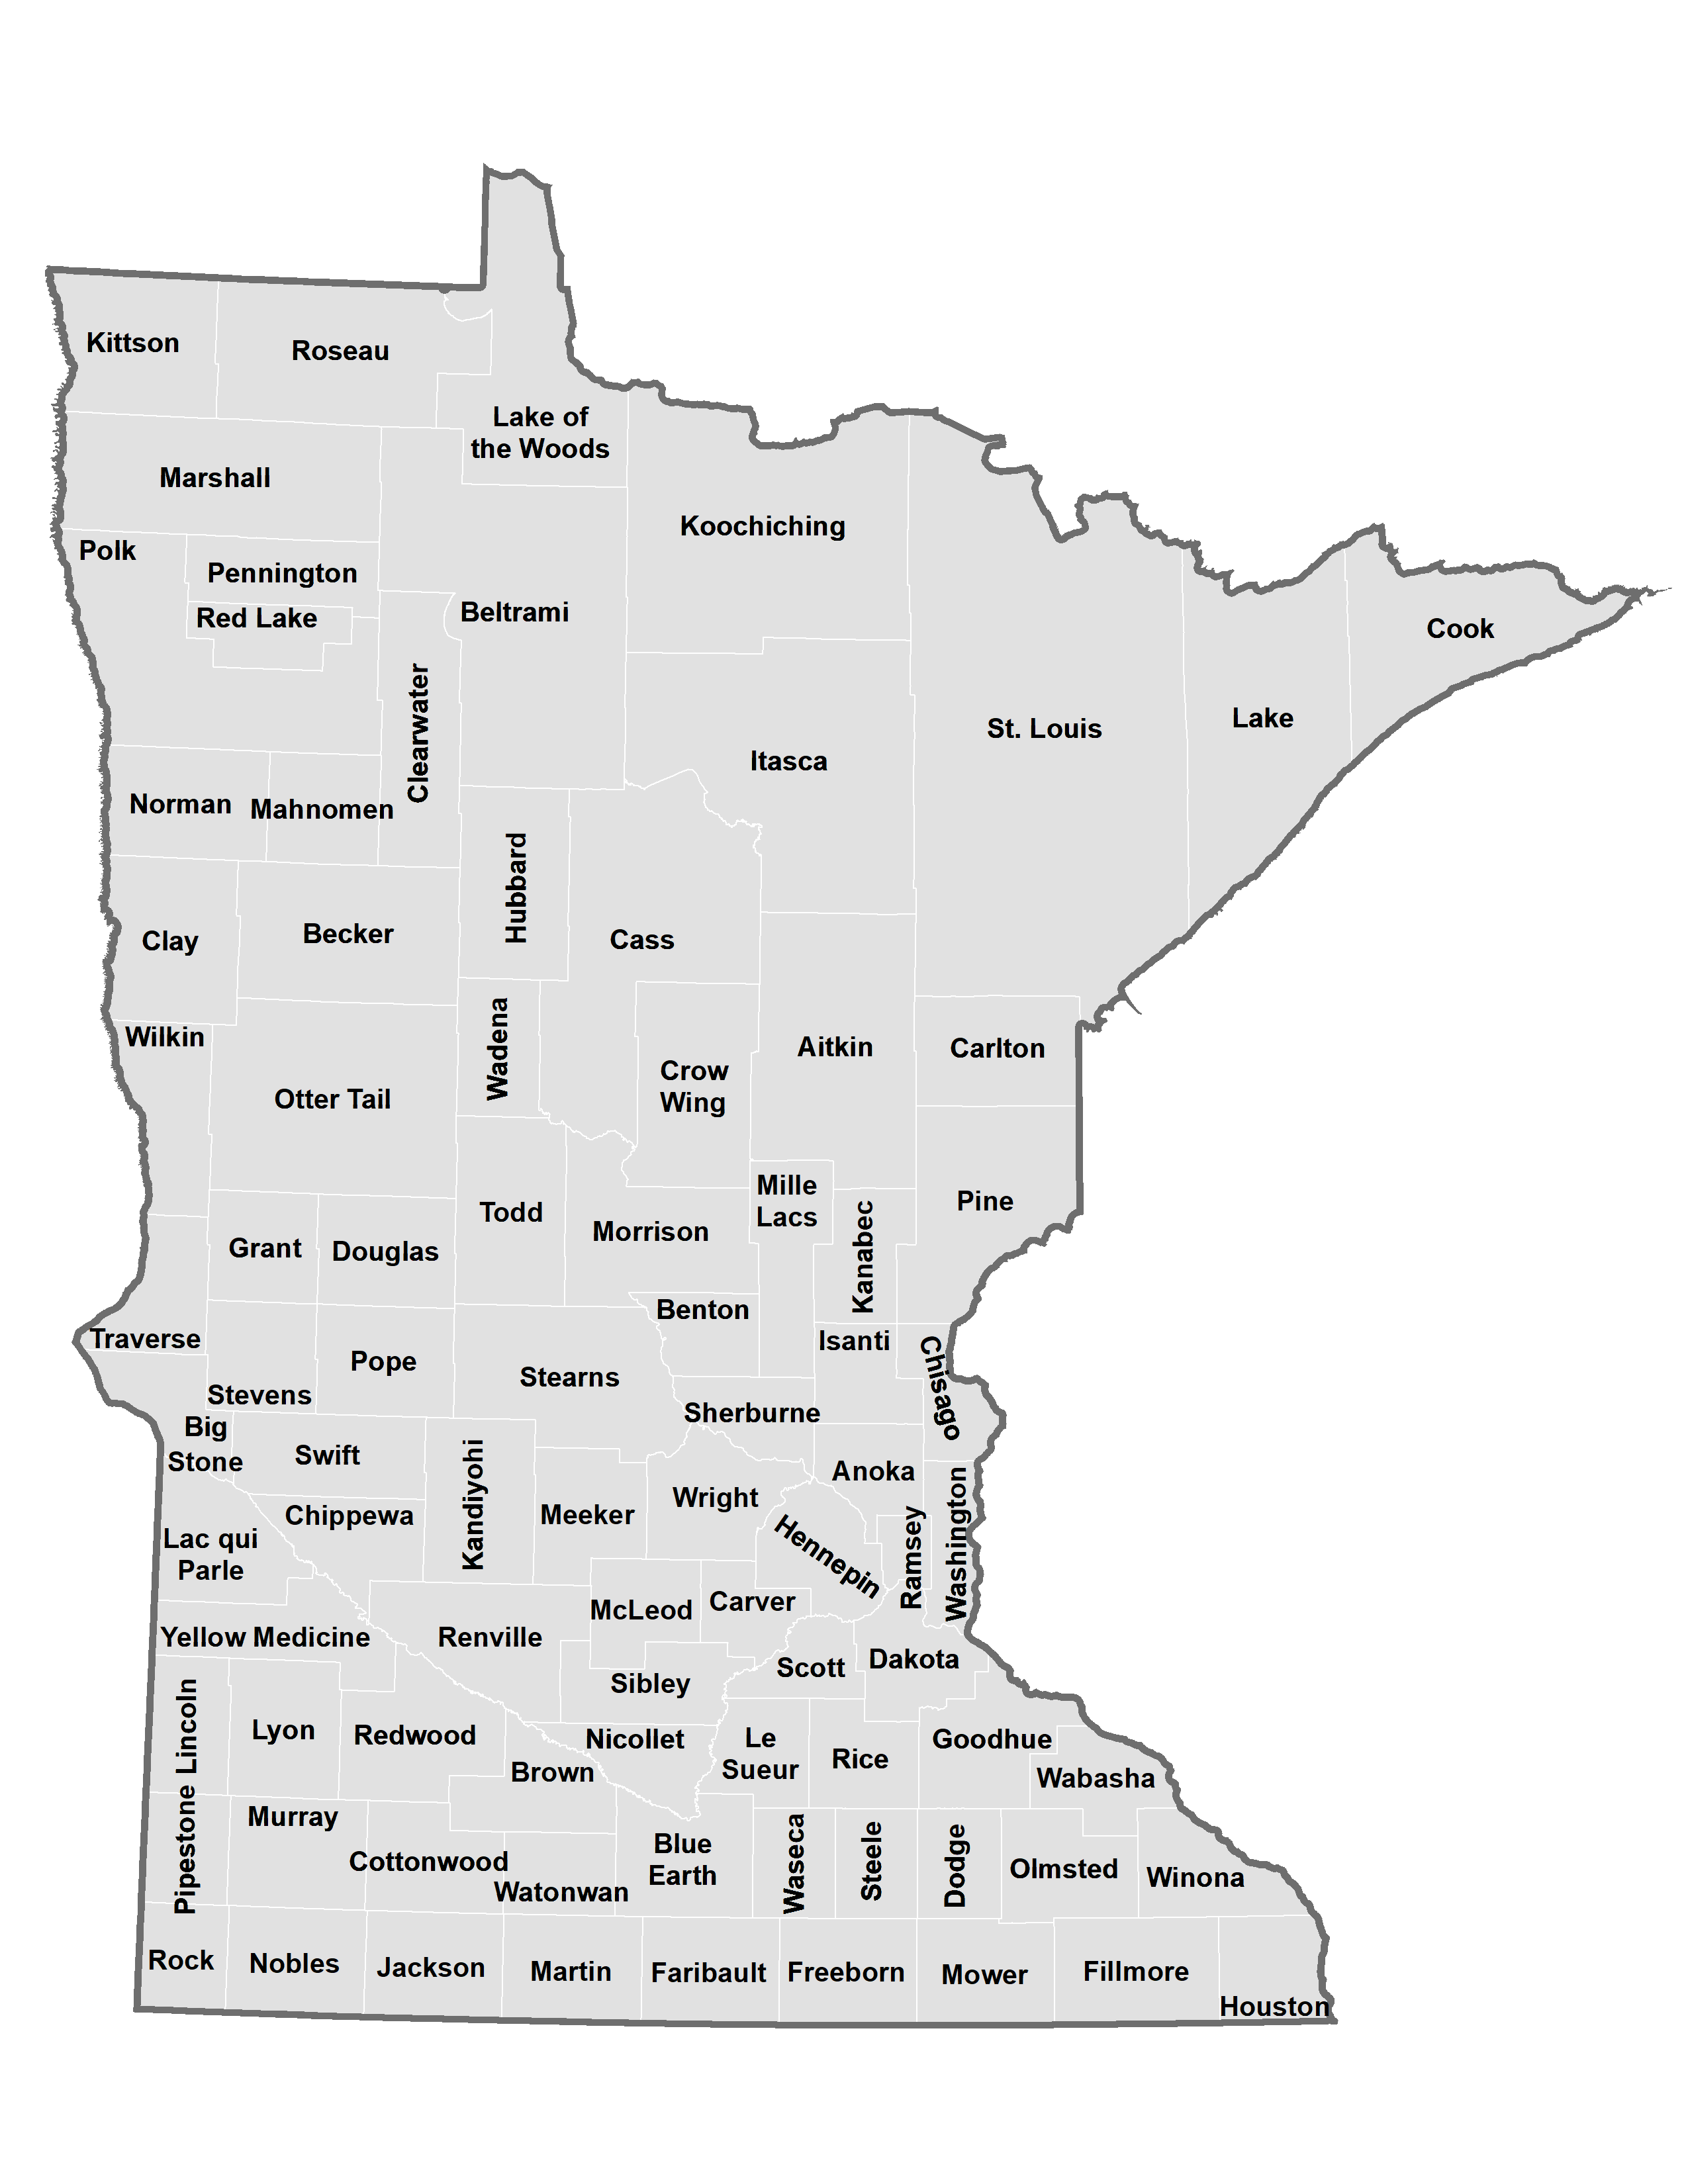 Minnesota counties